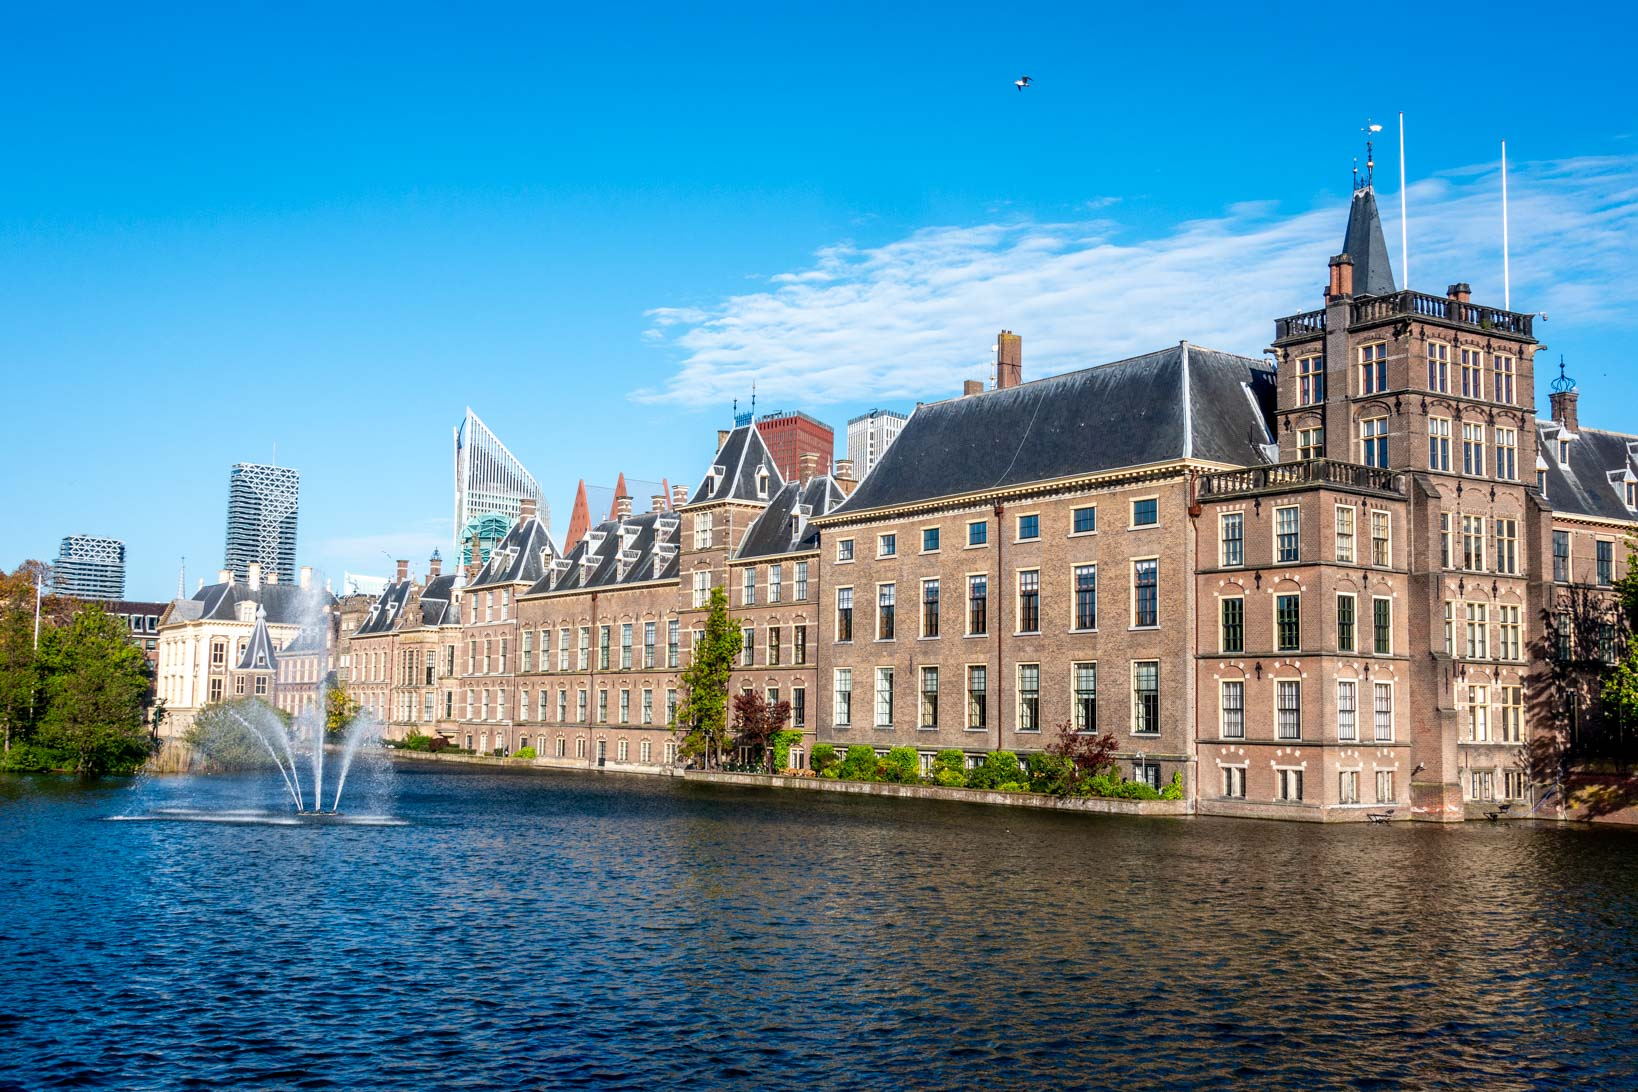 Large brick building beside a pond, the Binnenhof